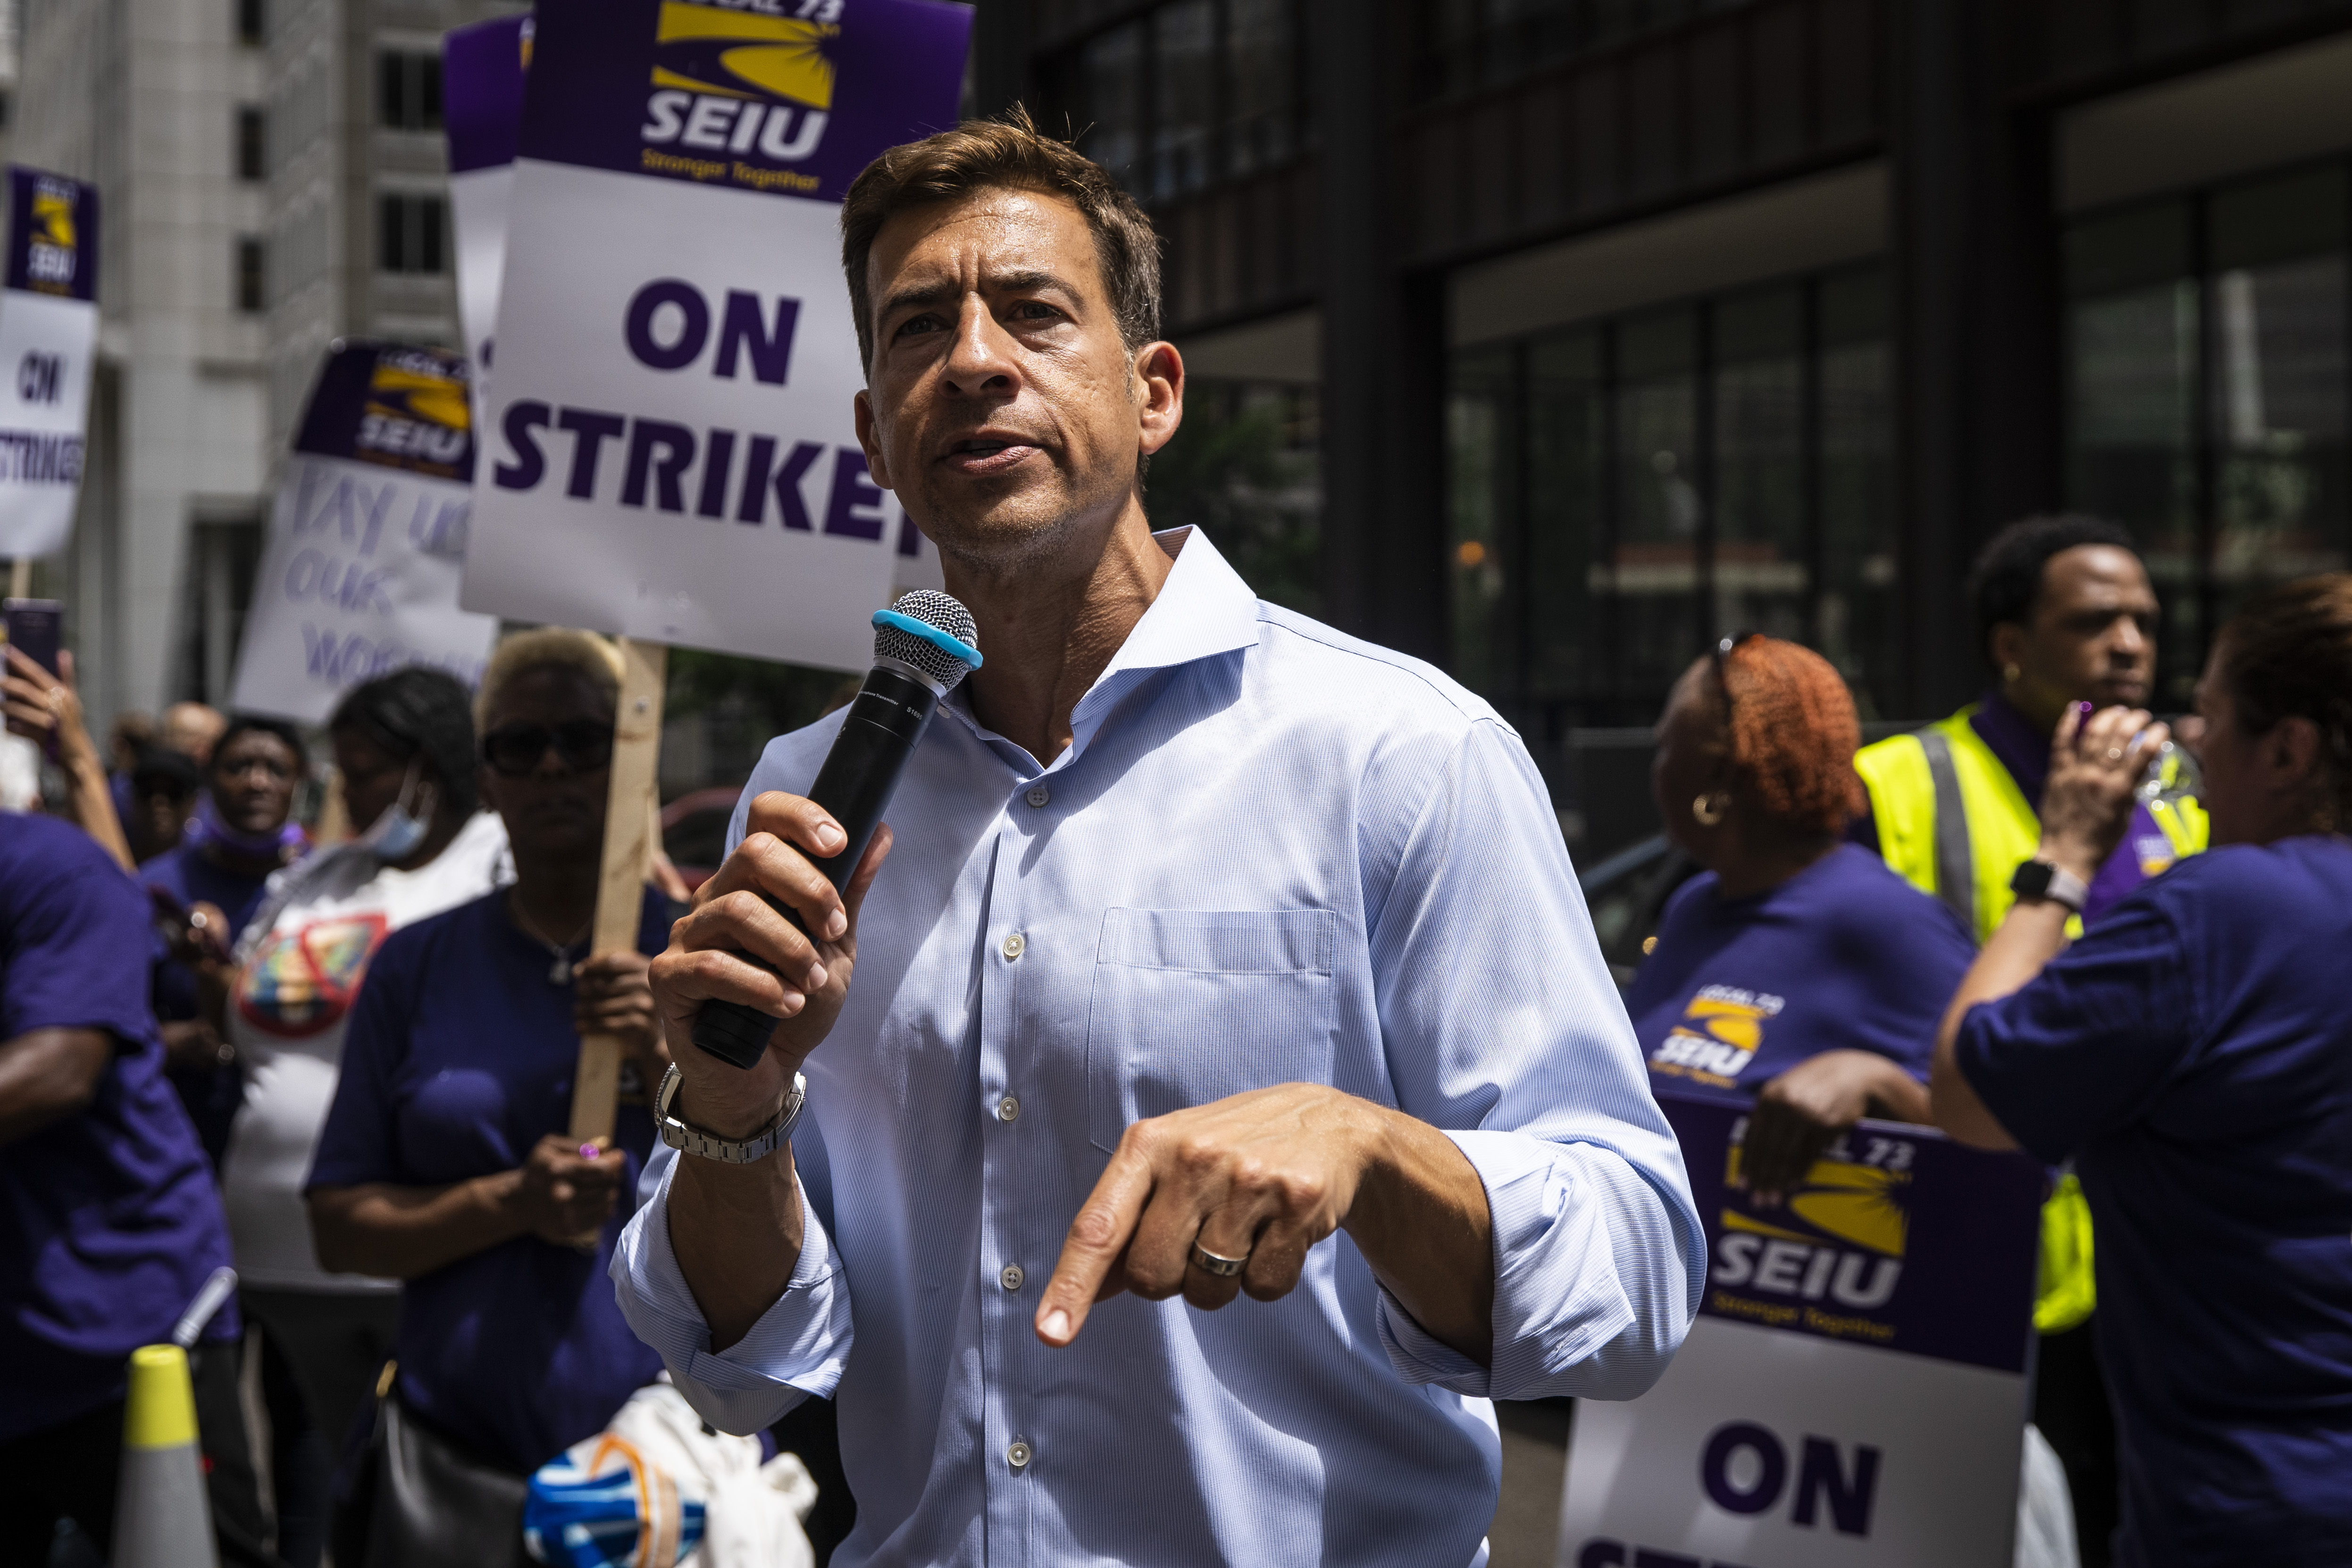 Democratic secretary of state candidate Alexi Giannoulias speaks to striking Cook County workers in June.